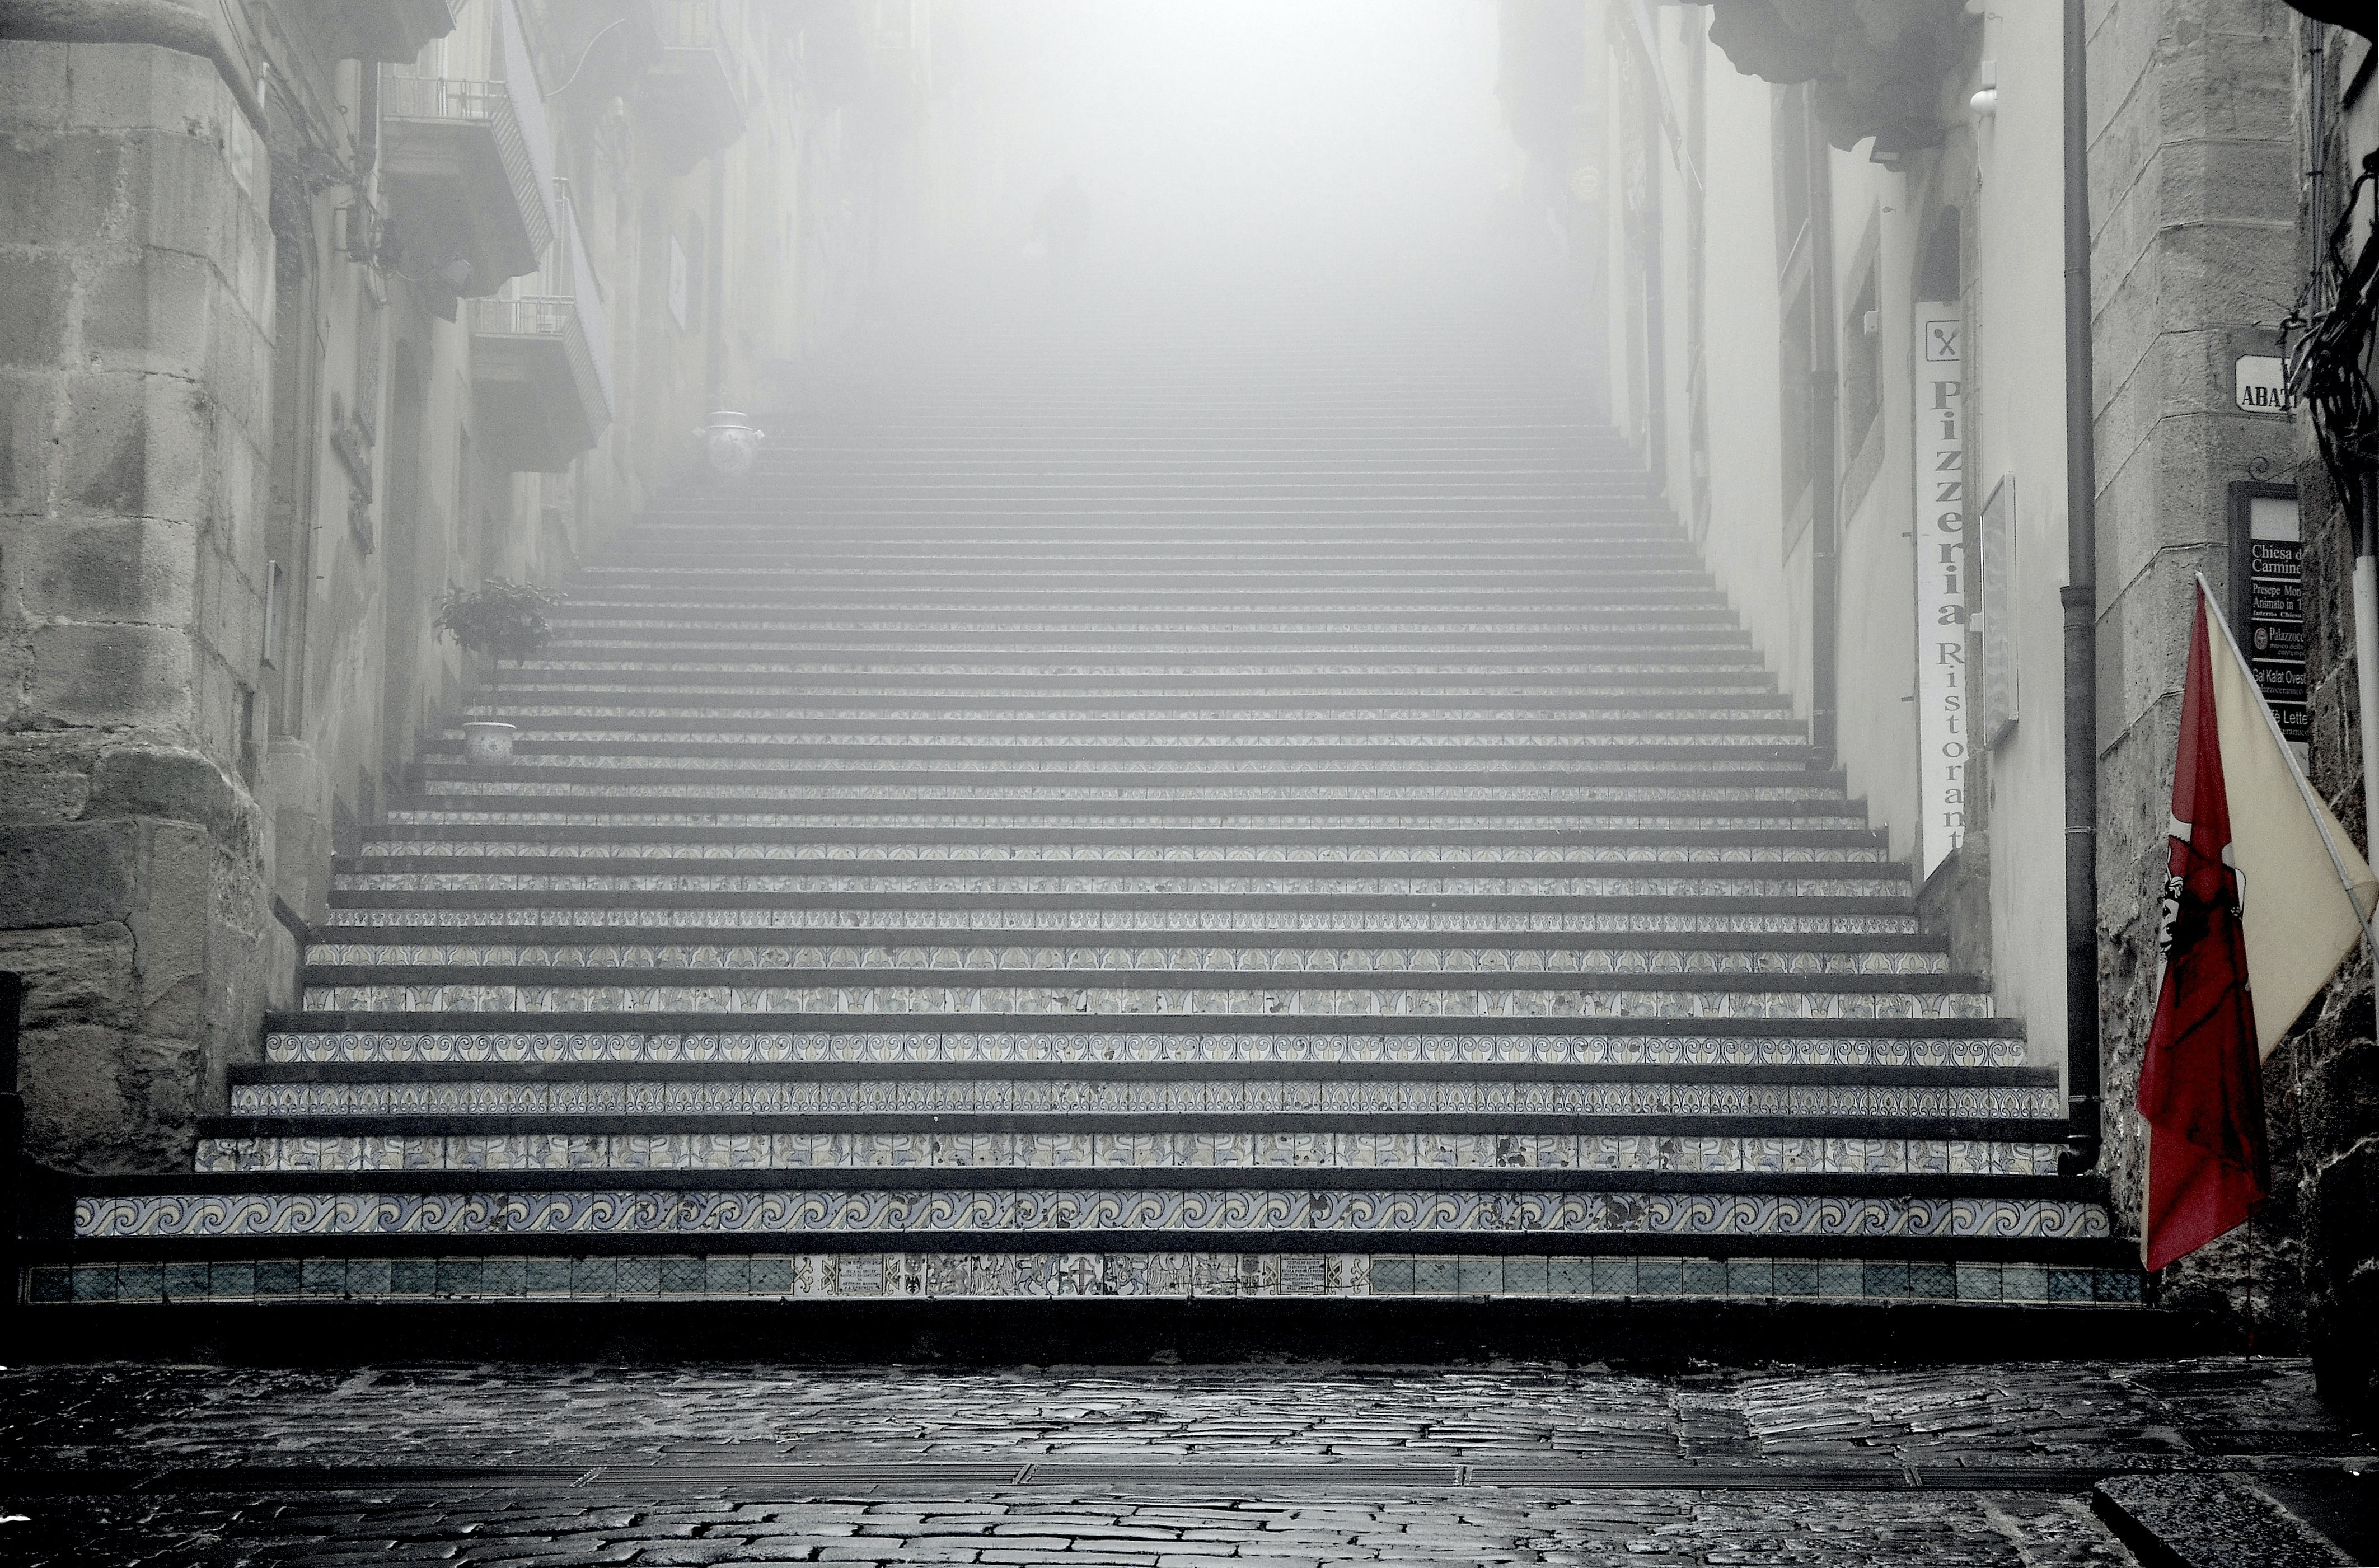 A moody and foggy day at Scala SS. Maria del Monte, Caltagirone staircase